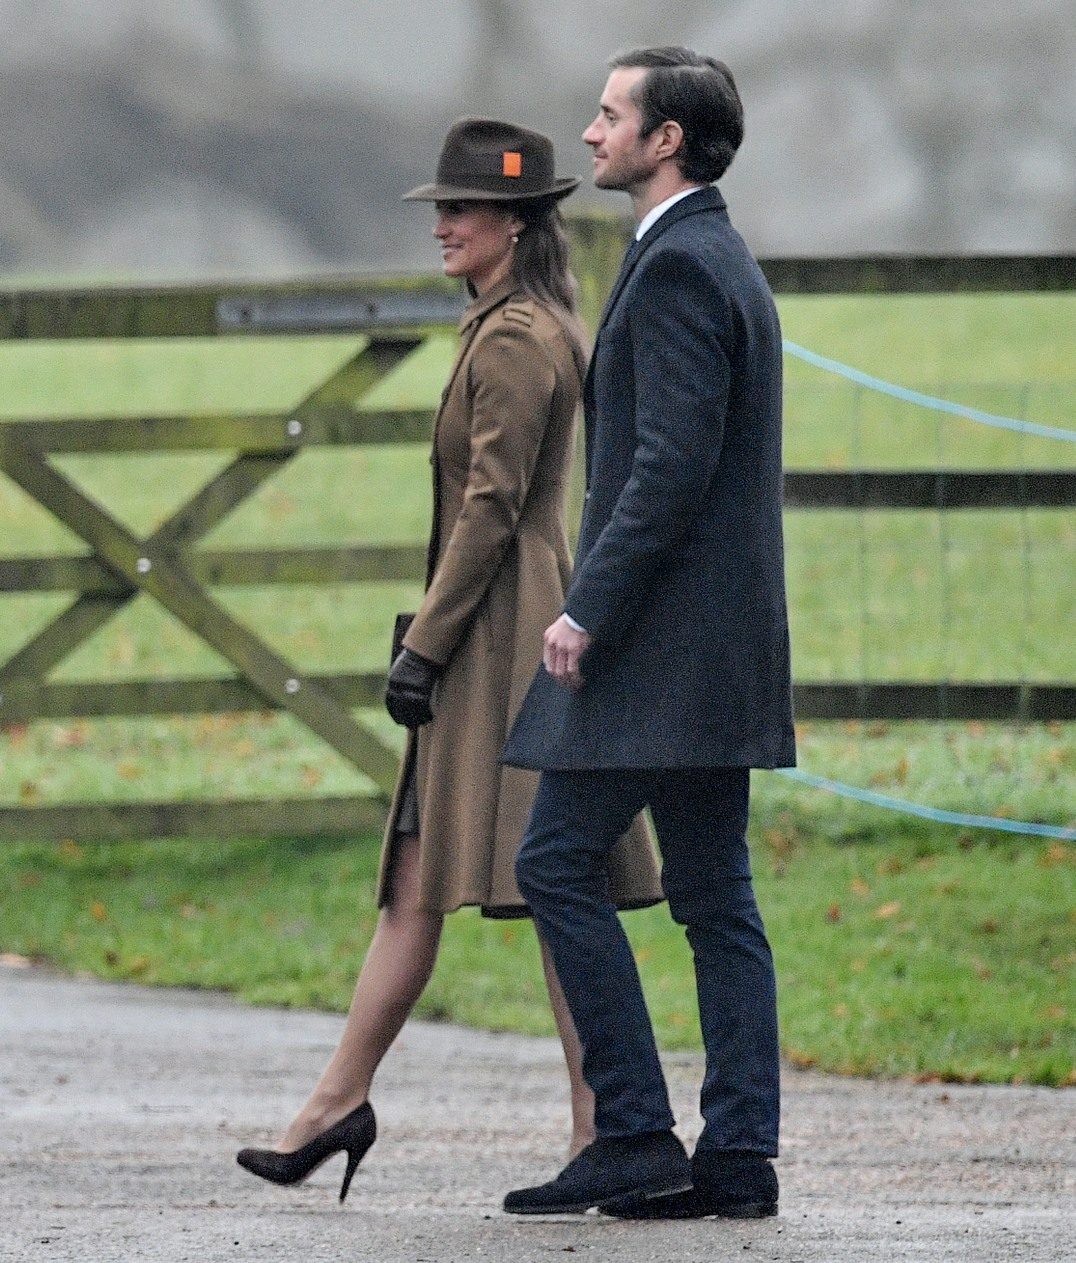 Pippa Middleton the sister  of the Duchess of Cambridge leaves  with James Matthews at  the  Sunday church service at The Church of St. Mary Magdalene on the Queens Sandringham estate